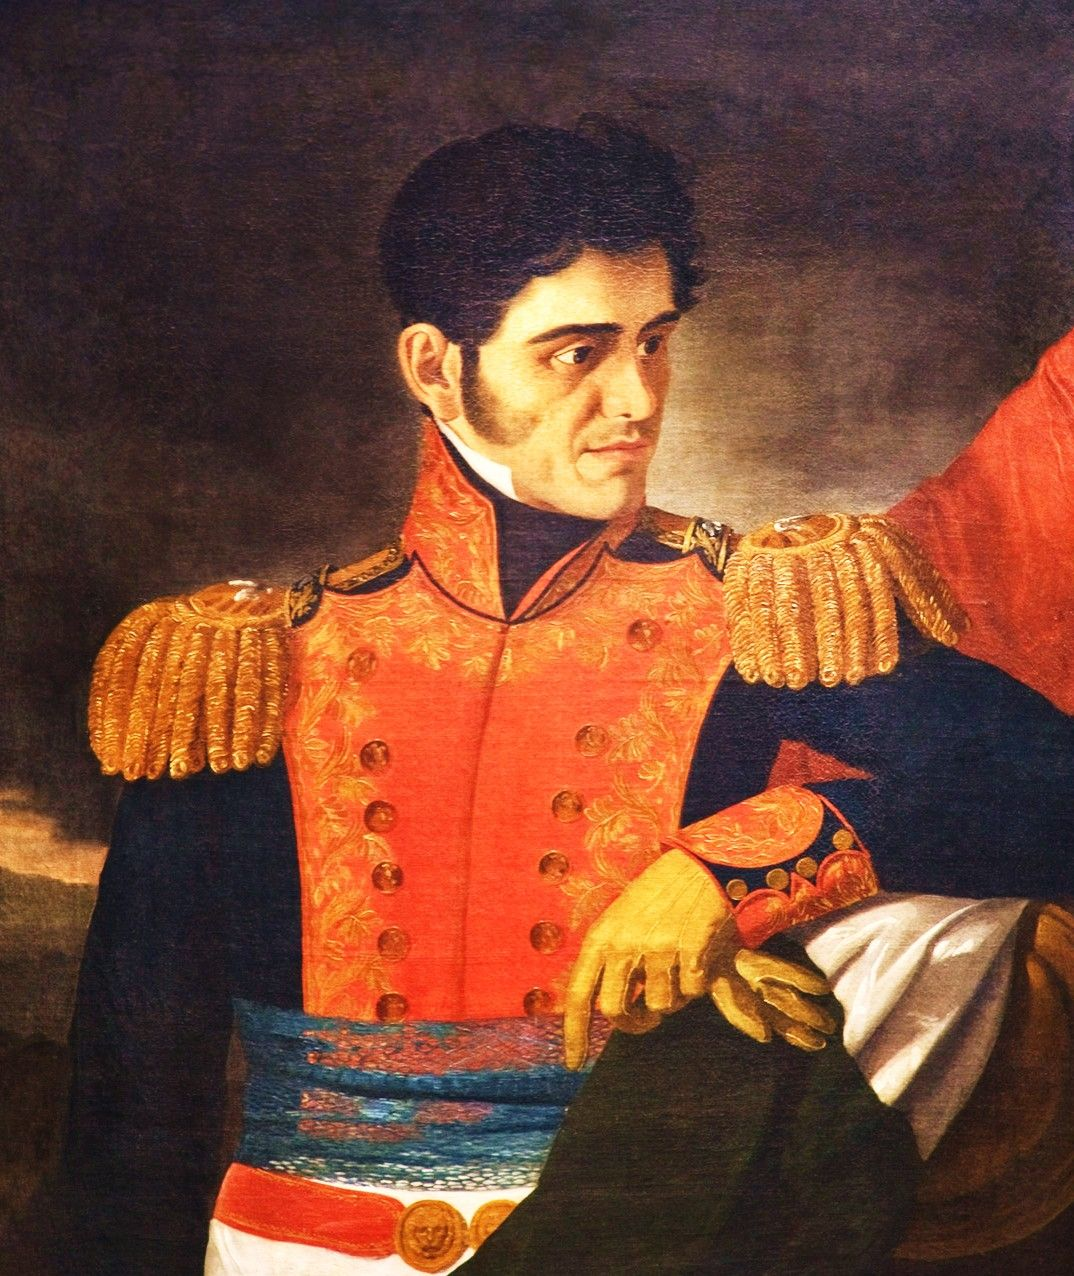 a biography of the mexican leader antonio de lopez de santa anna perez de lebron Antonio lópez de santa anna aka antonio lópez de santa anna pérez de lebrón hero of tampico birthplace: jalapa, mexico location of death: mexico city, me mexican.